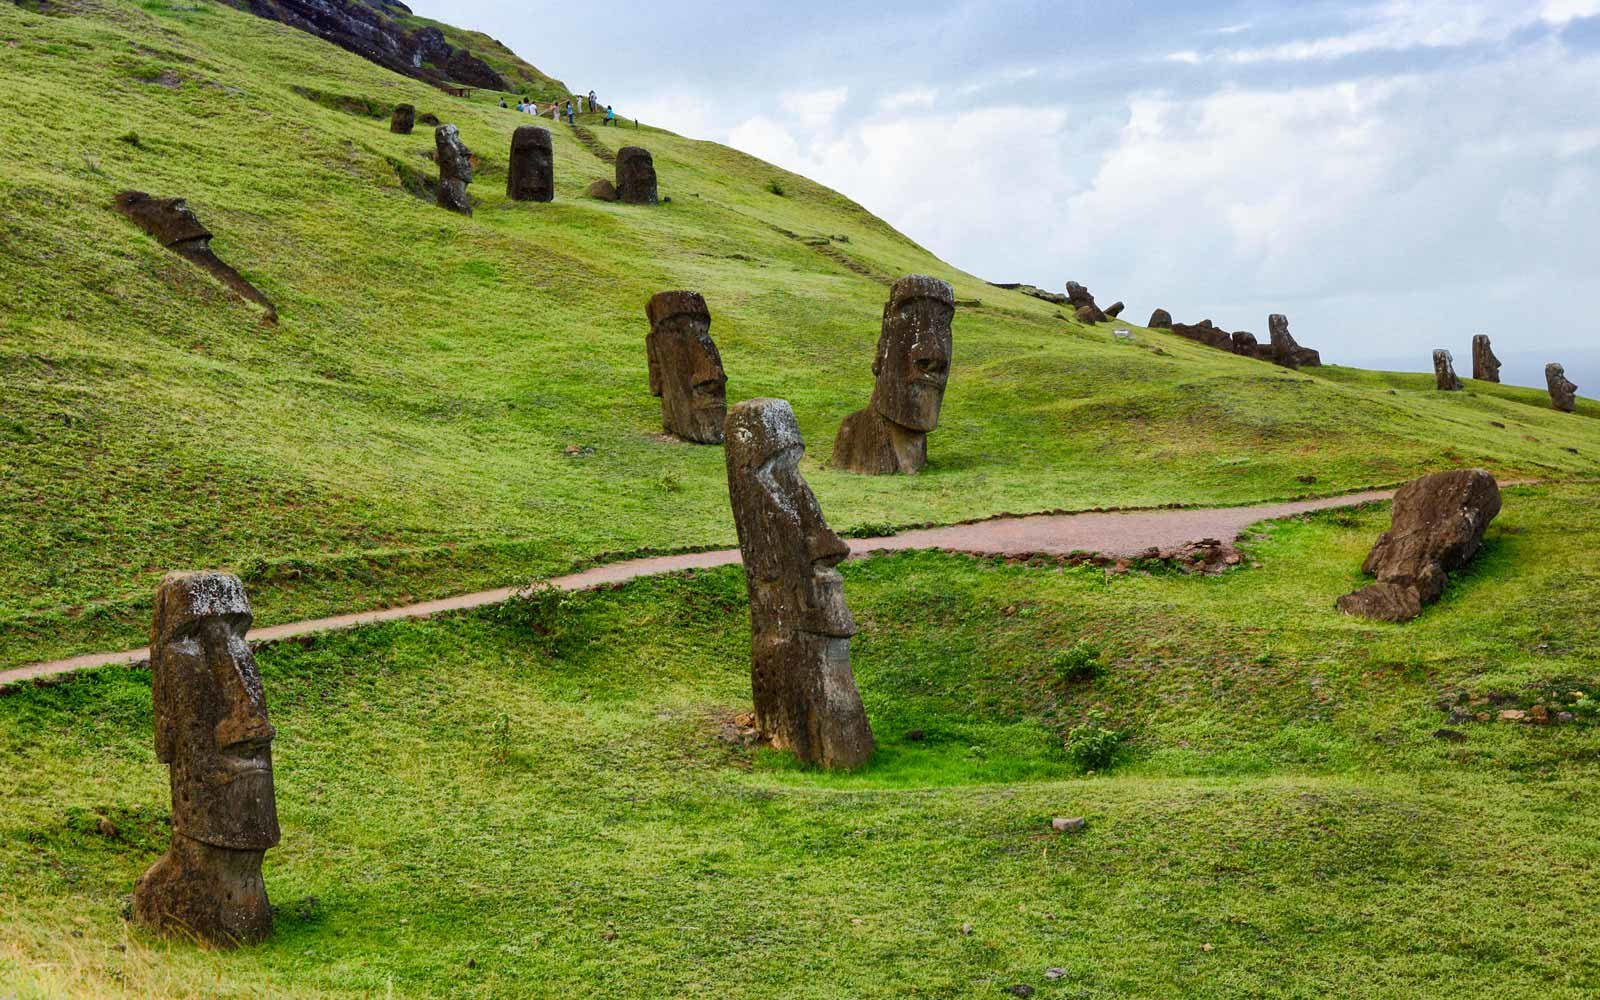 easter island research papers And easter island's history with its large statues the student will also get a more detailed knowledge of one island group through a research paper, learning basic research.